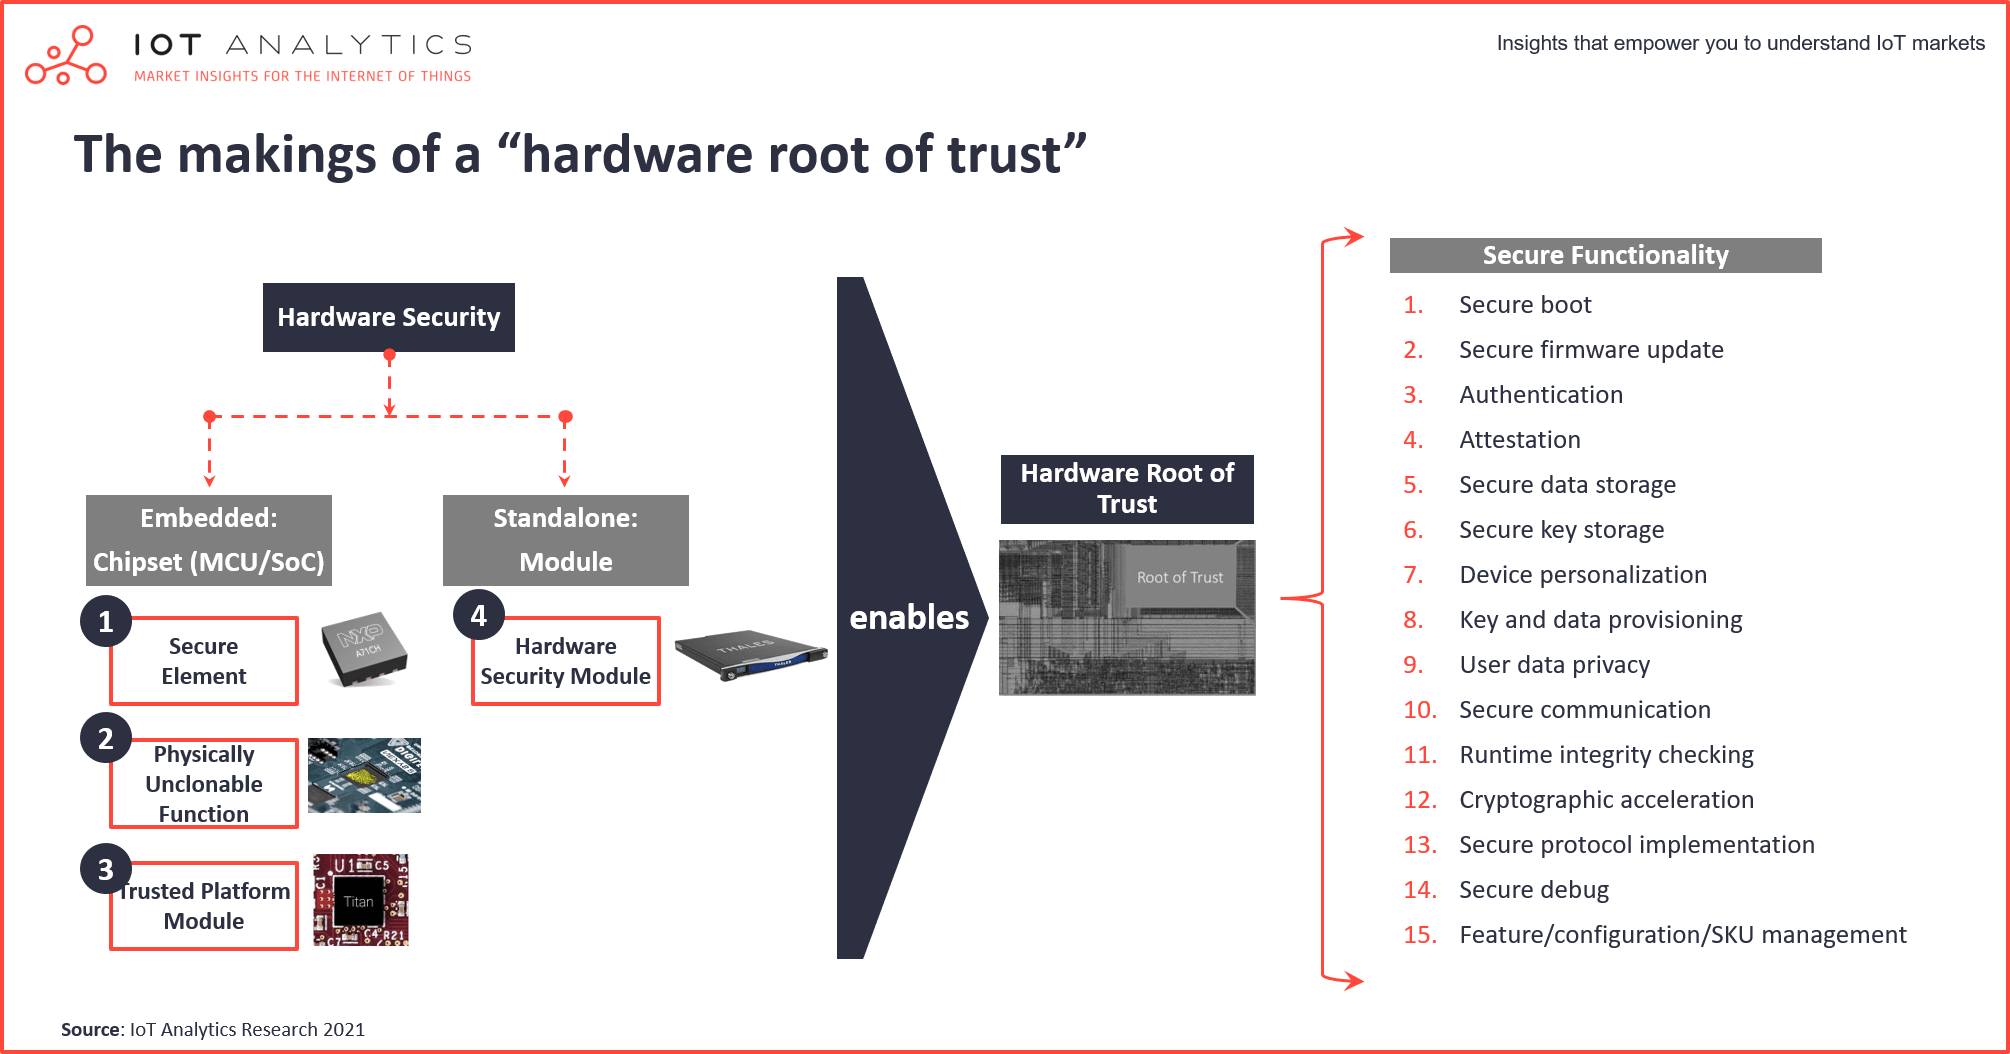 The rise of the iot semiconductor - making of a hardware root of trust